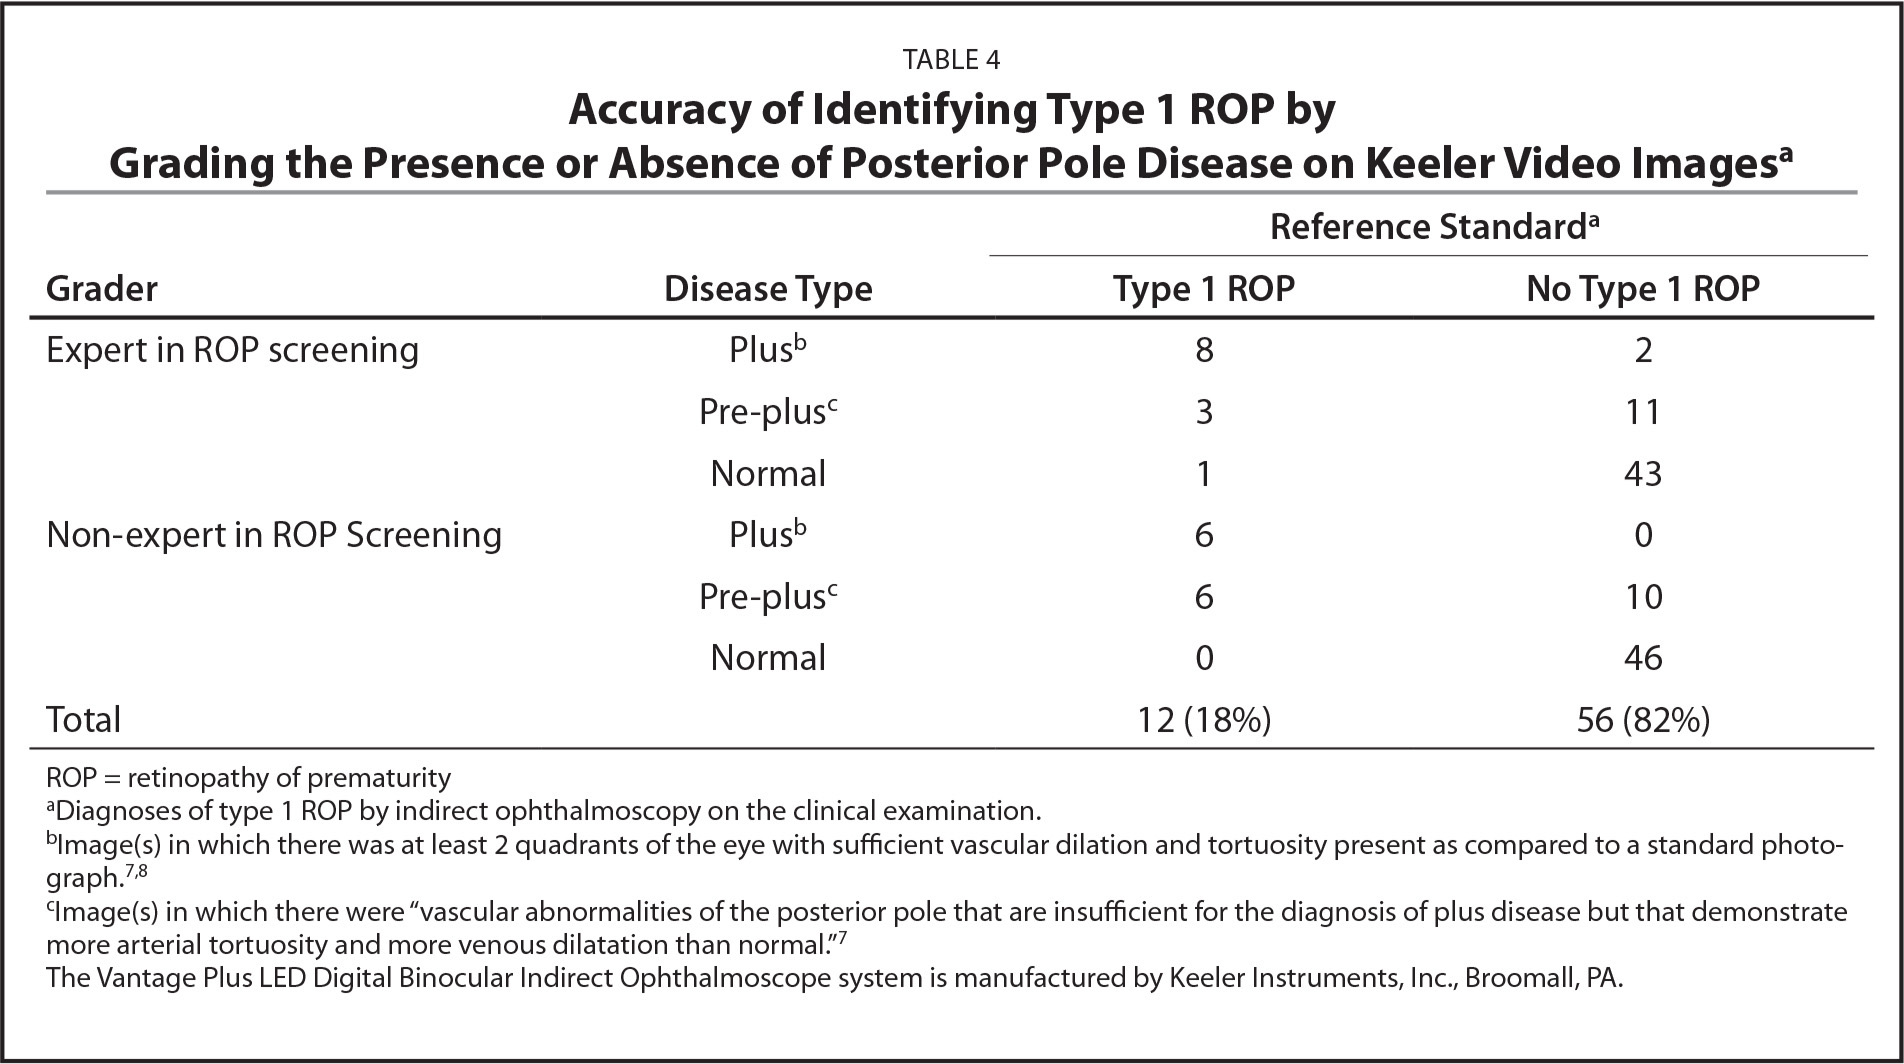 Accuracy of Identifying Type 1 ROP by Grading the Presence or Absence of Posterior Pole Disease on Keeler Video Imagesa